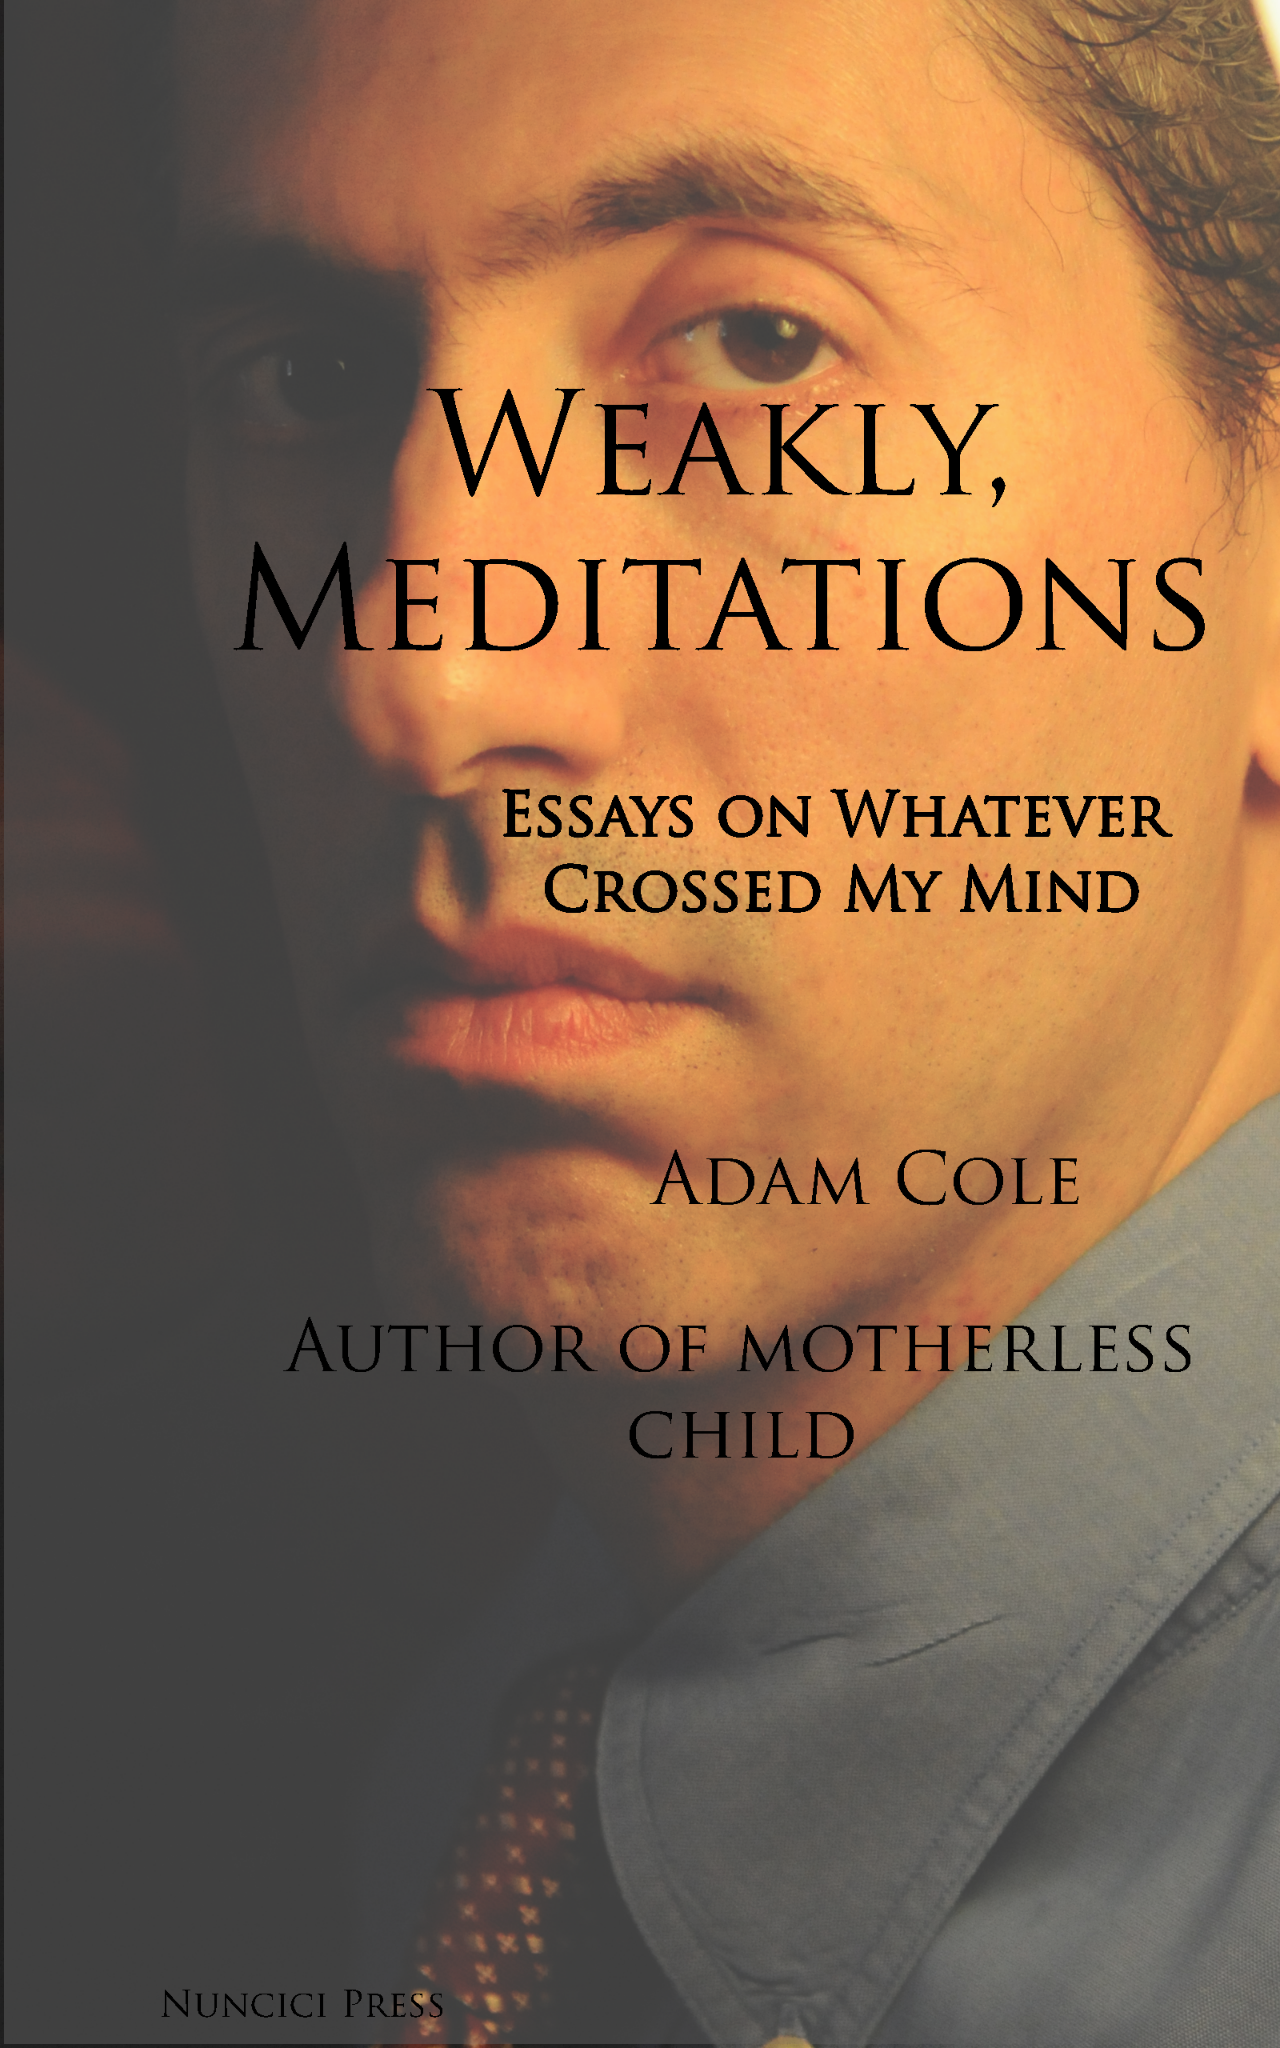 Weakly, Meditations - Essays On Whatever Crossed My Mind